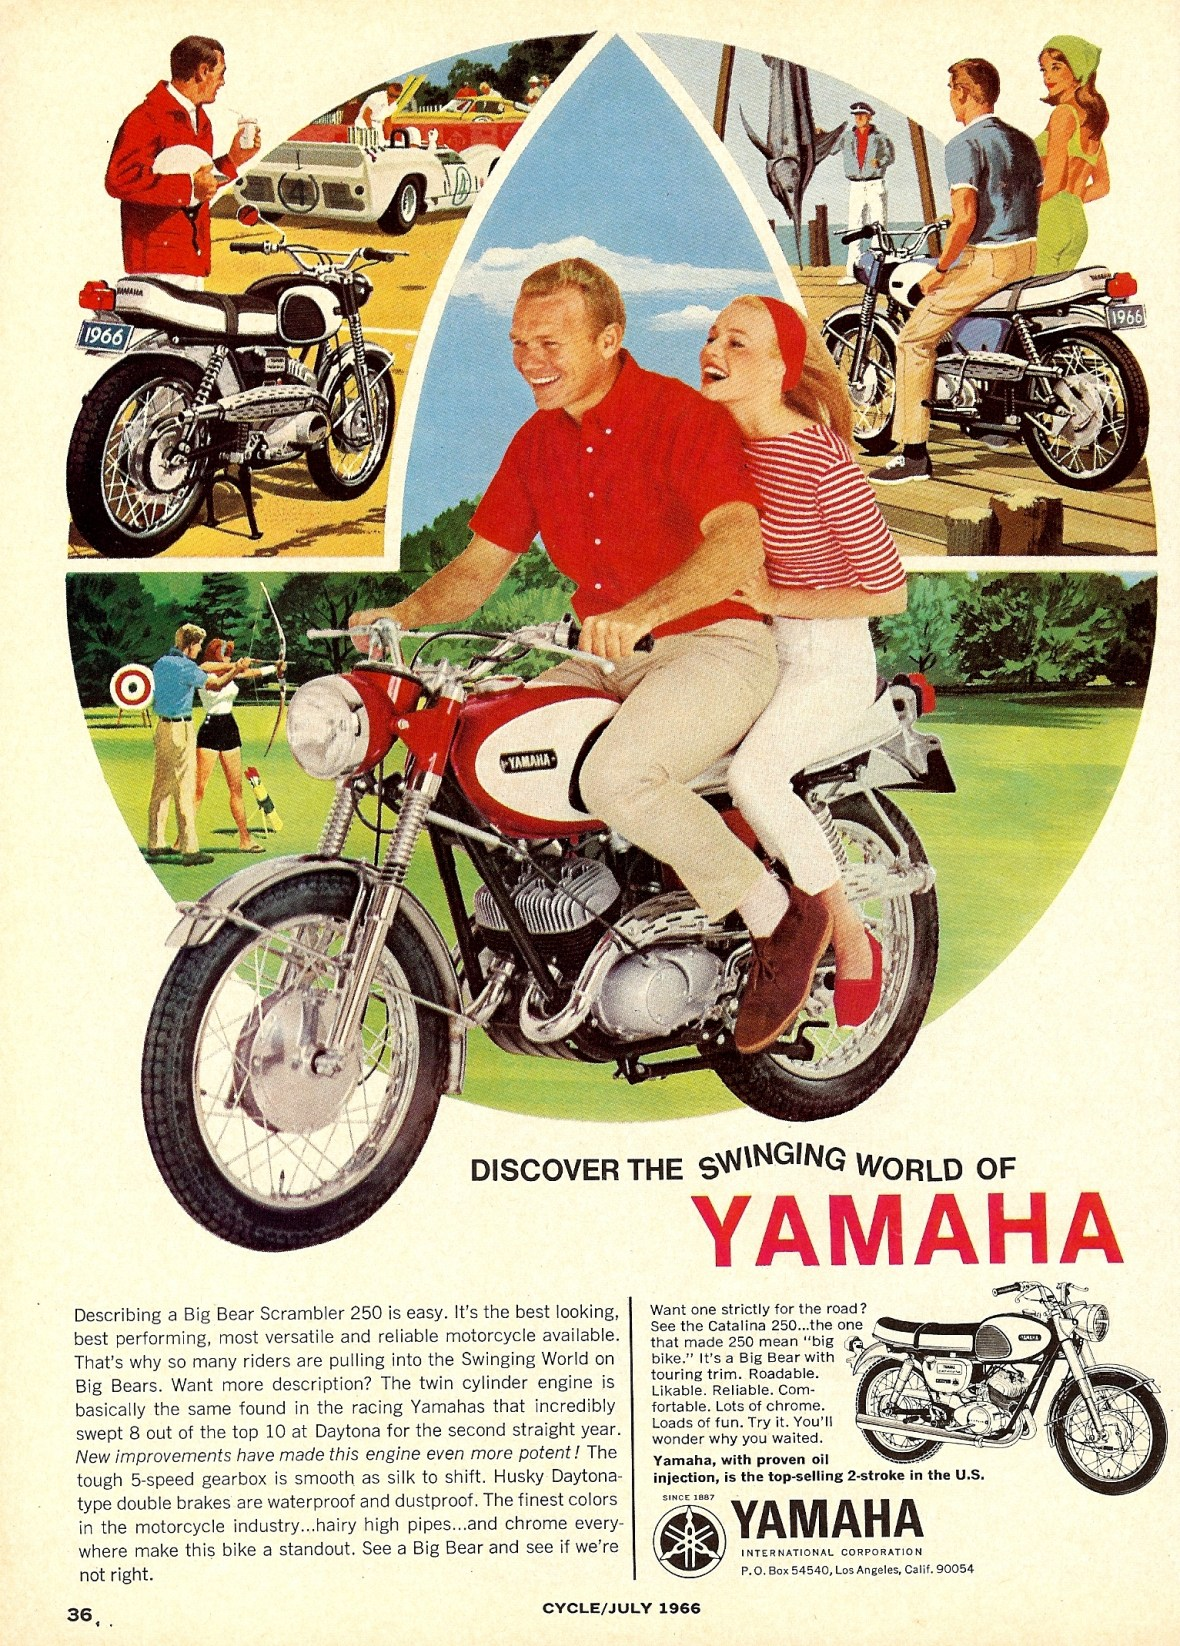 Yamaha Big Bear Scrambler 250 - published in Cycle - July 1966